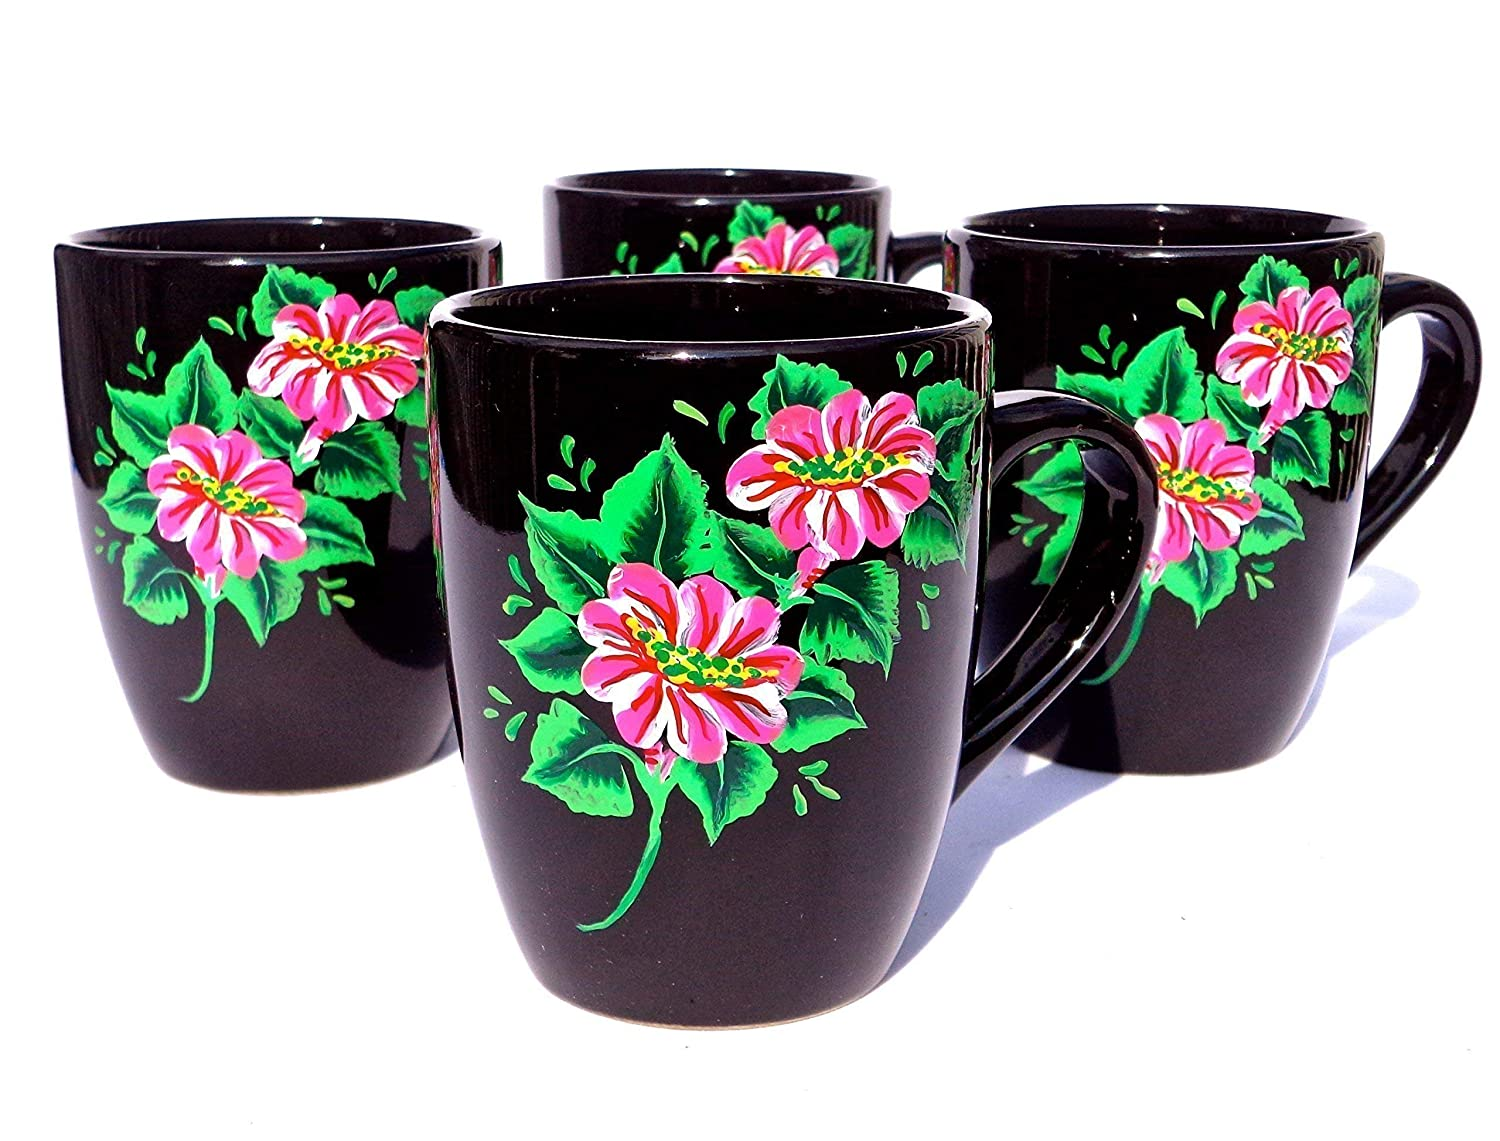 Max Houston Mall 84% OFF Coffee Mugs Hand Painted Black Cups Flowers White With and Pink